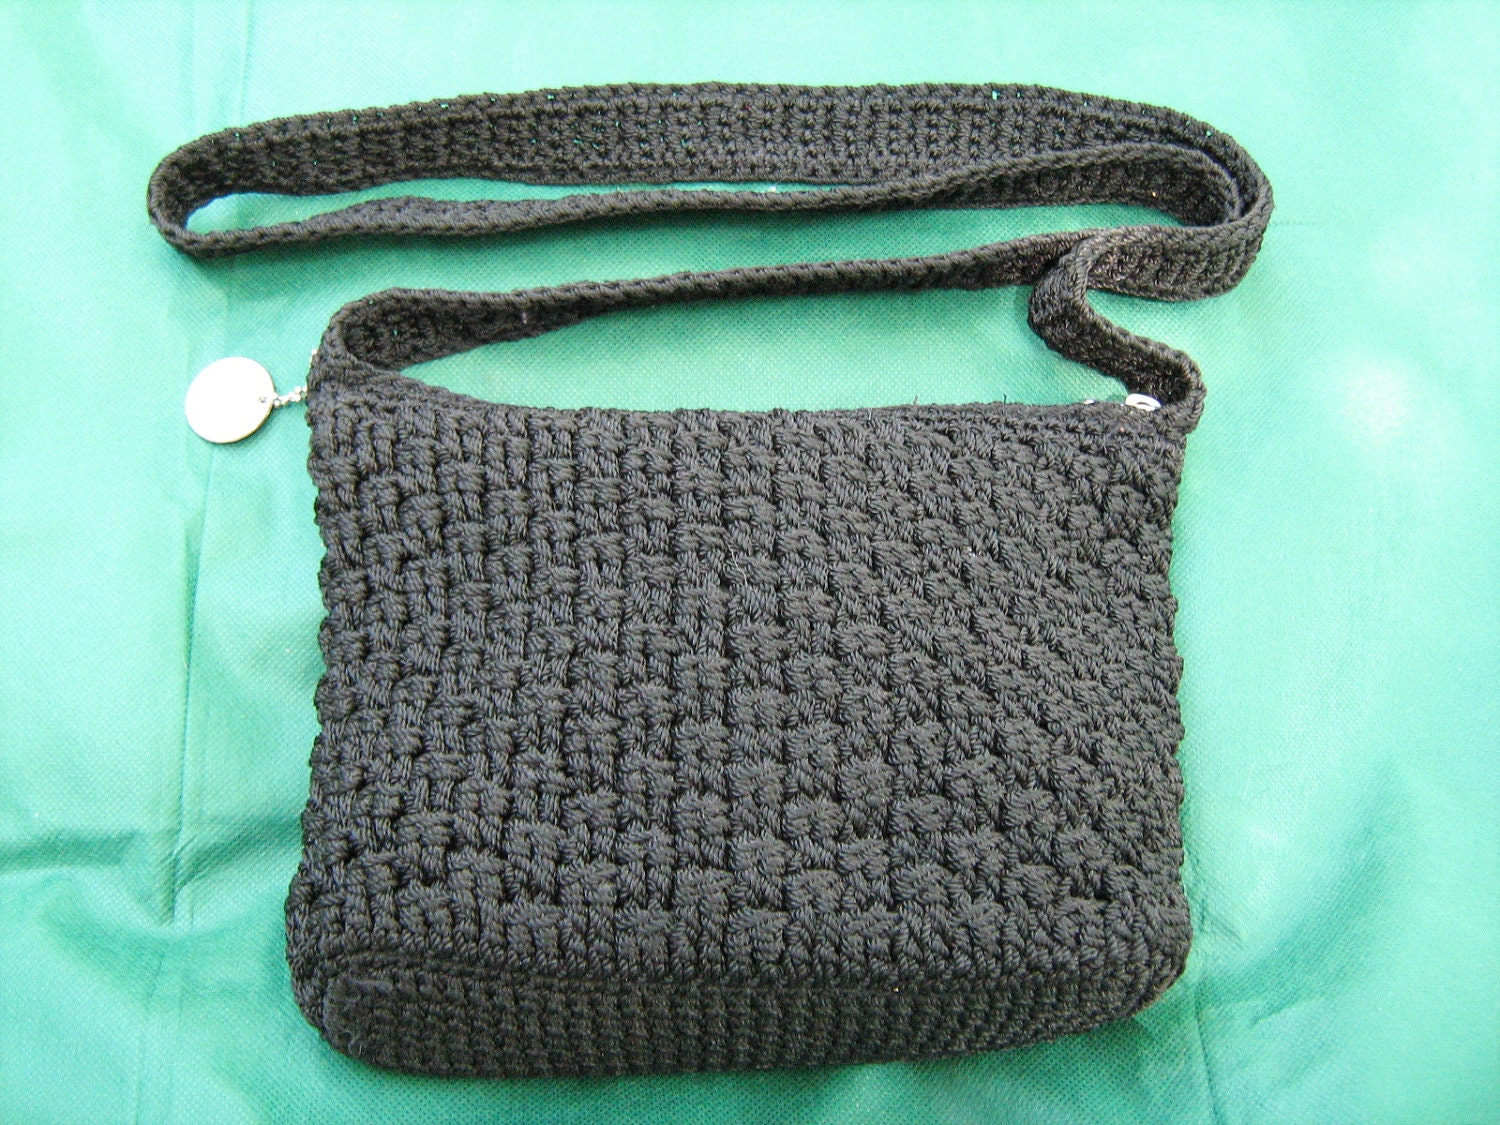 The Sak Black Crochet Handbag : The Sak Black Crochet Cross-Body Shoulder Bag by LydiaJaneVintage